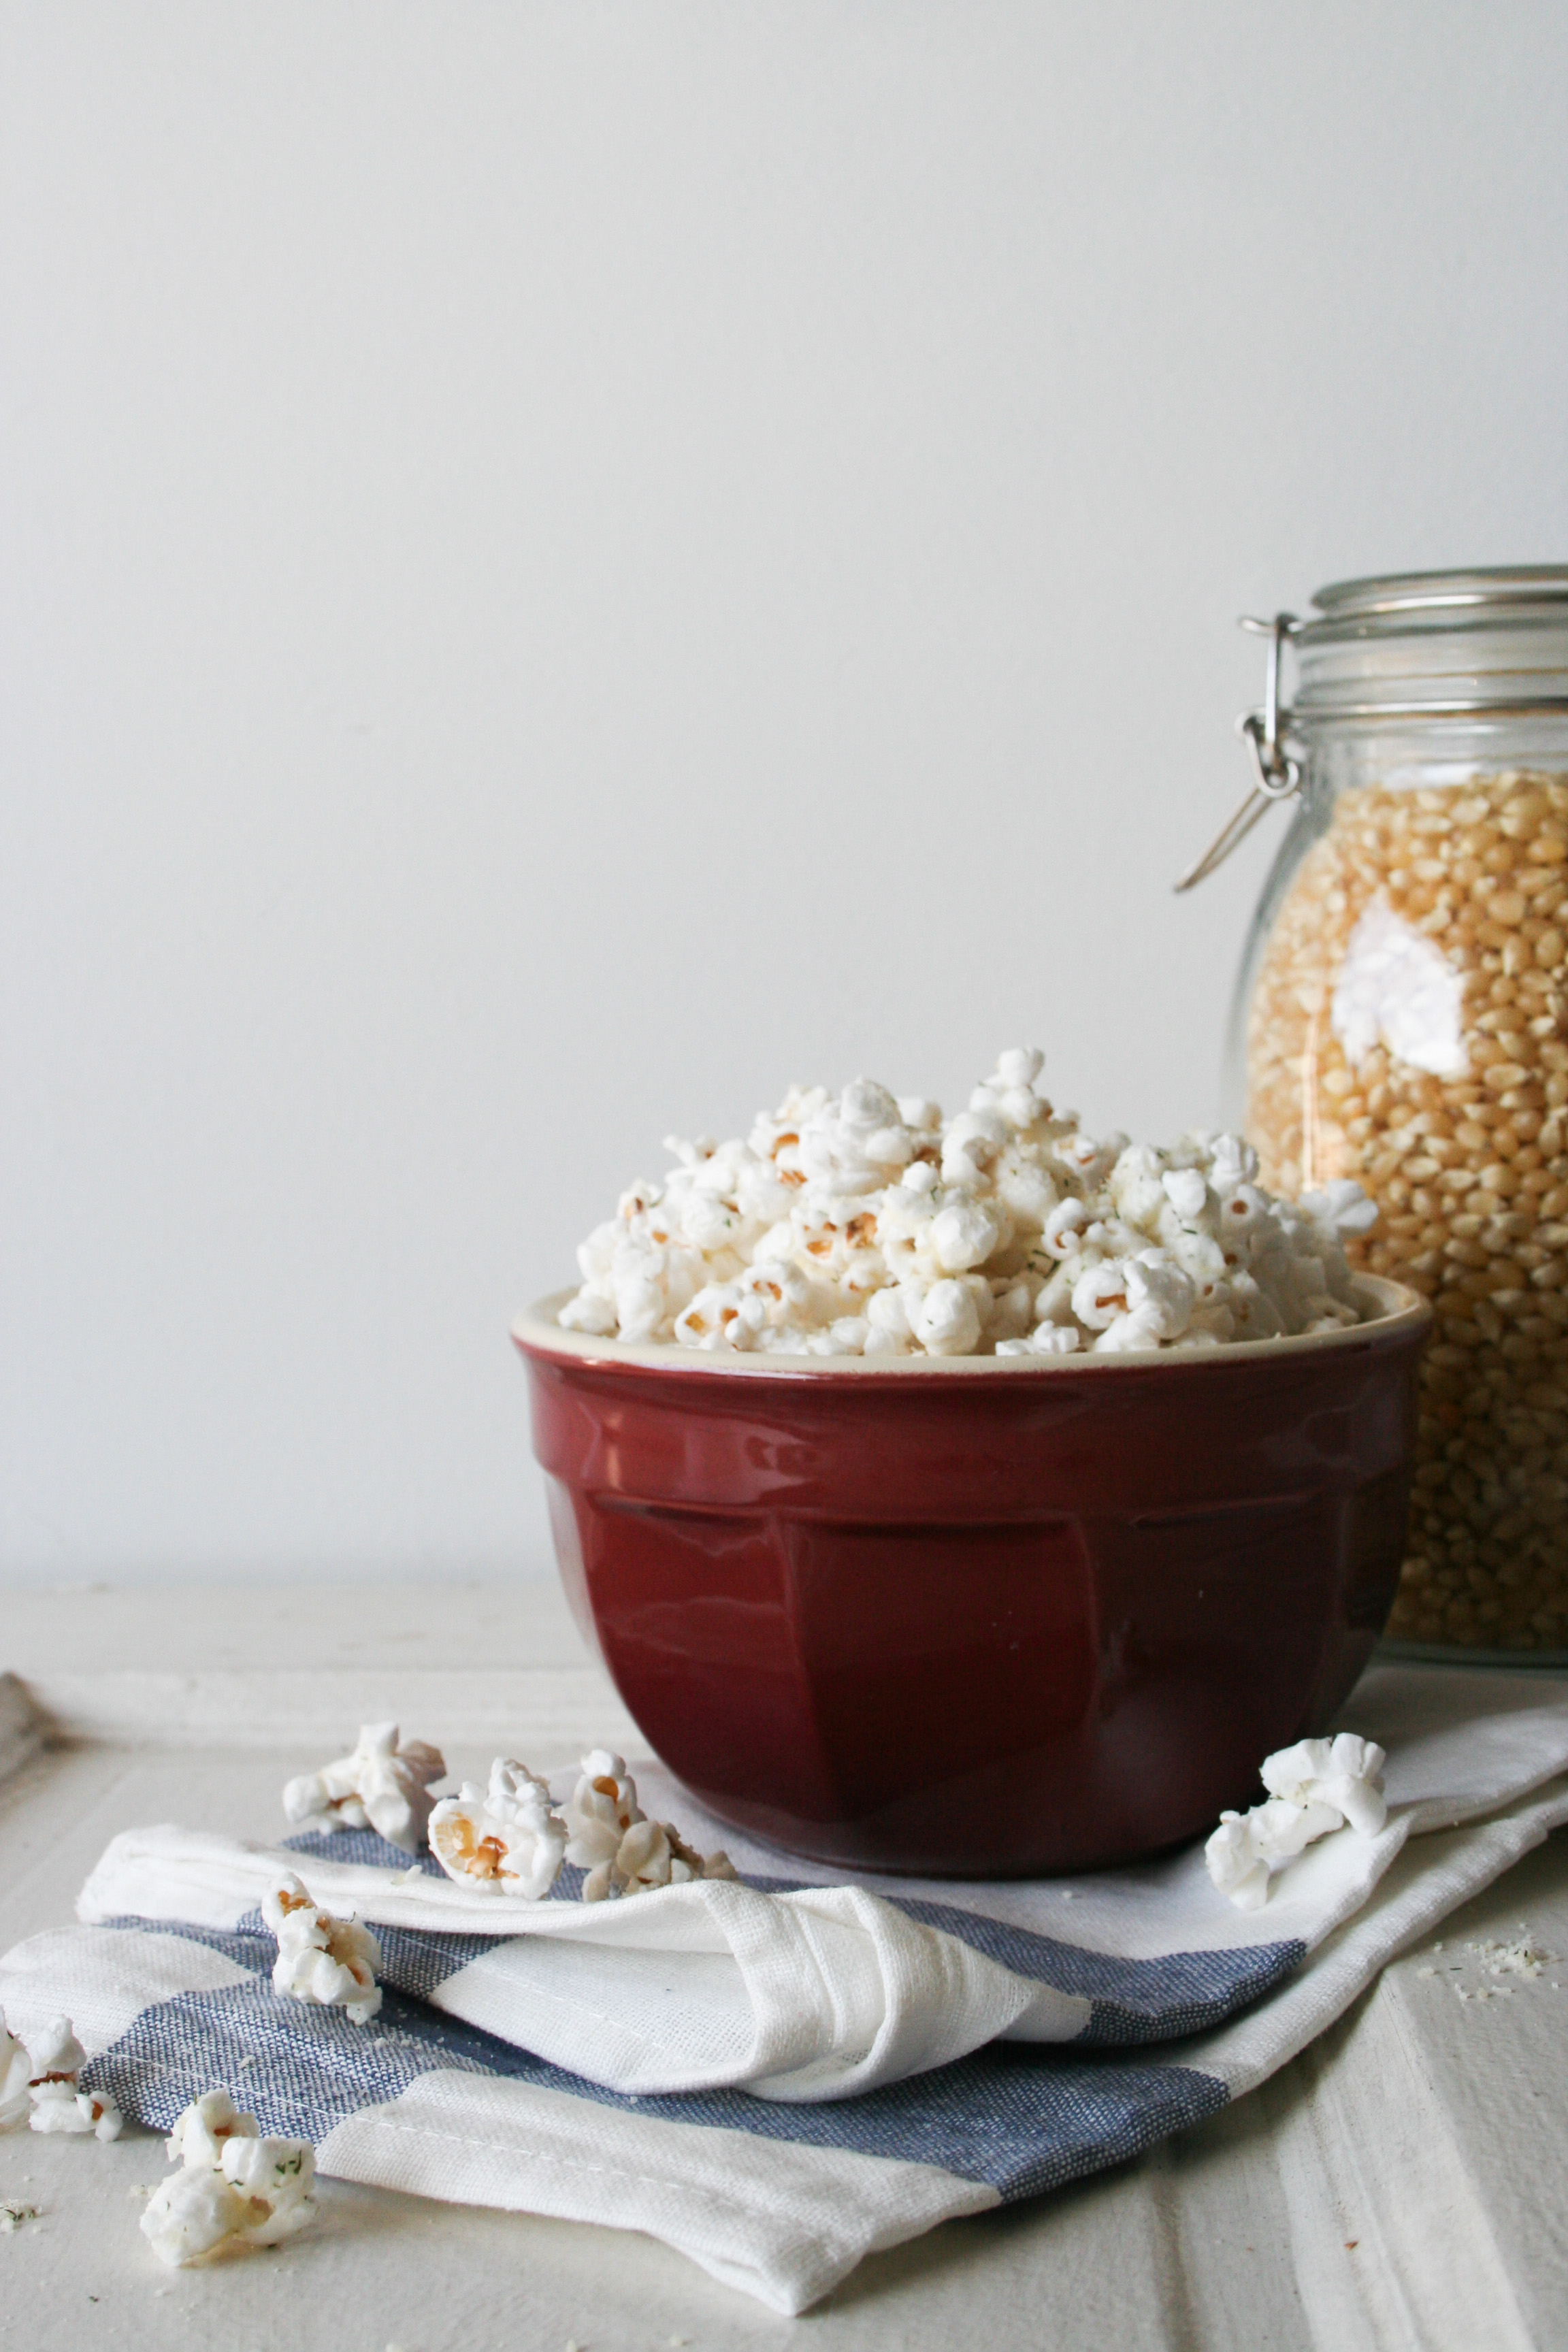 how to use popcorn seasoning